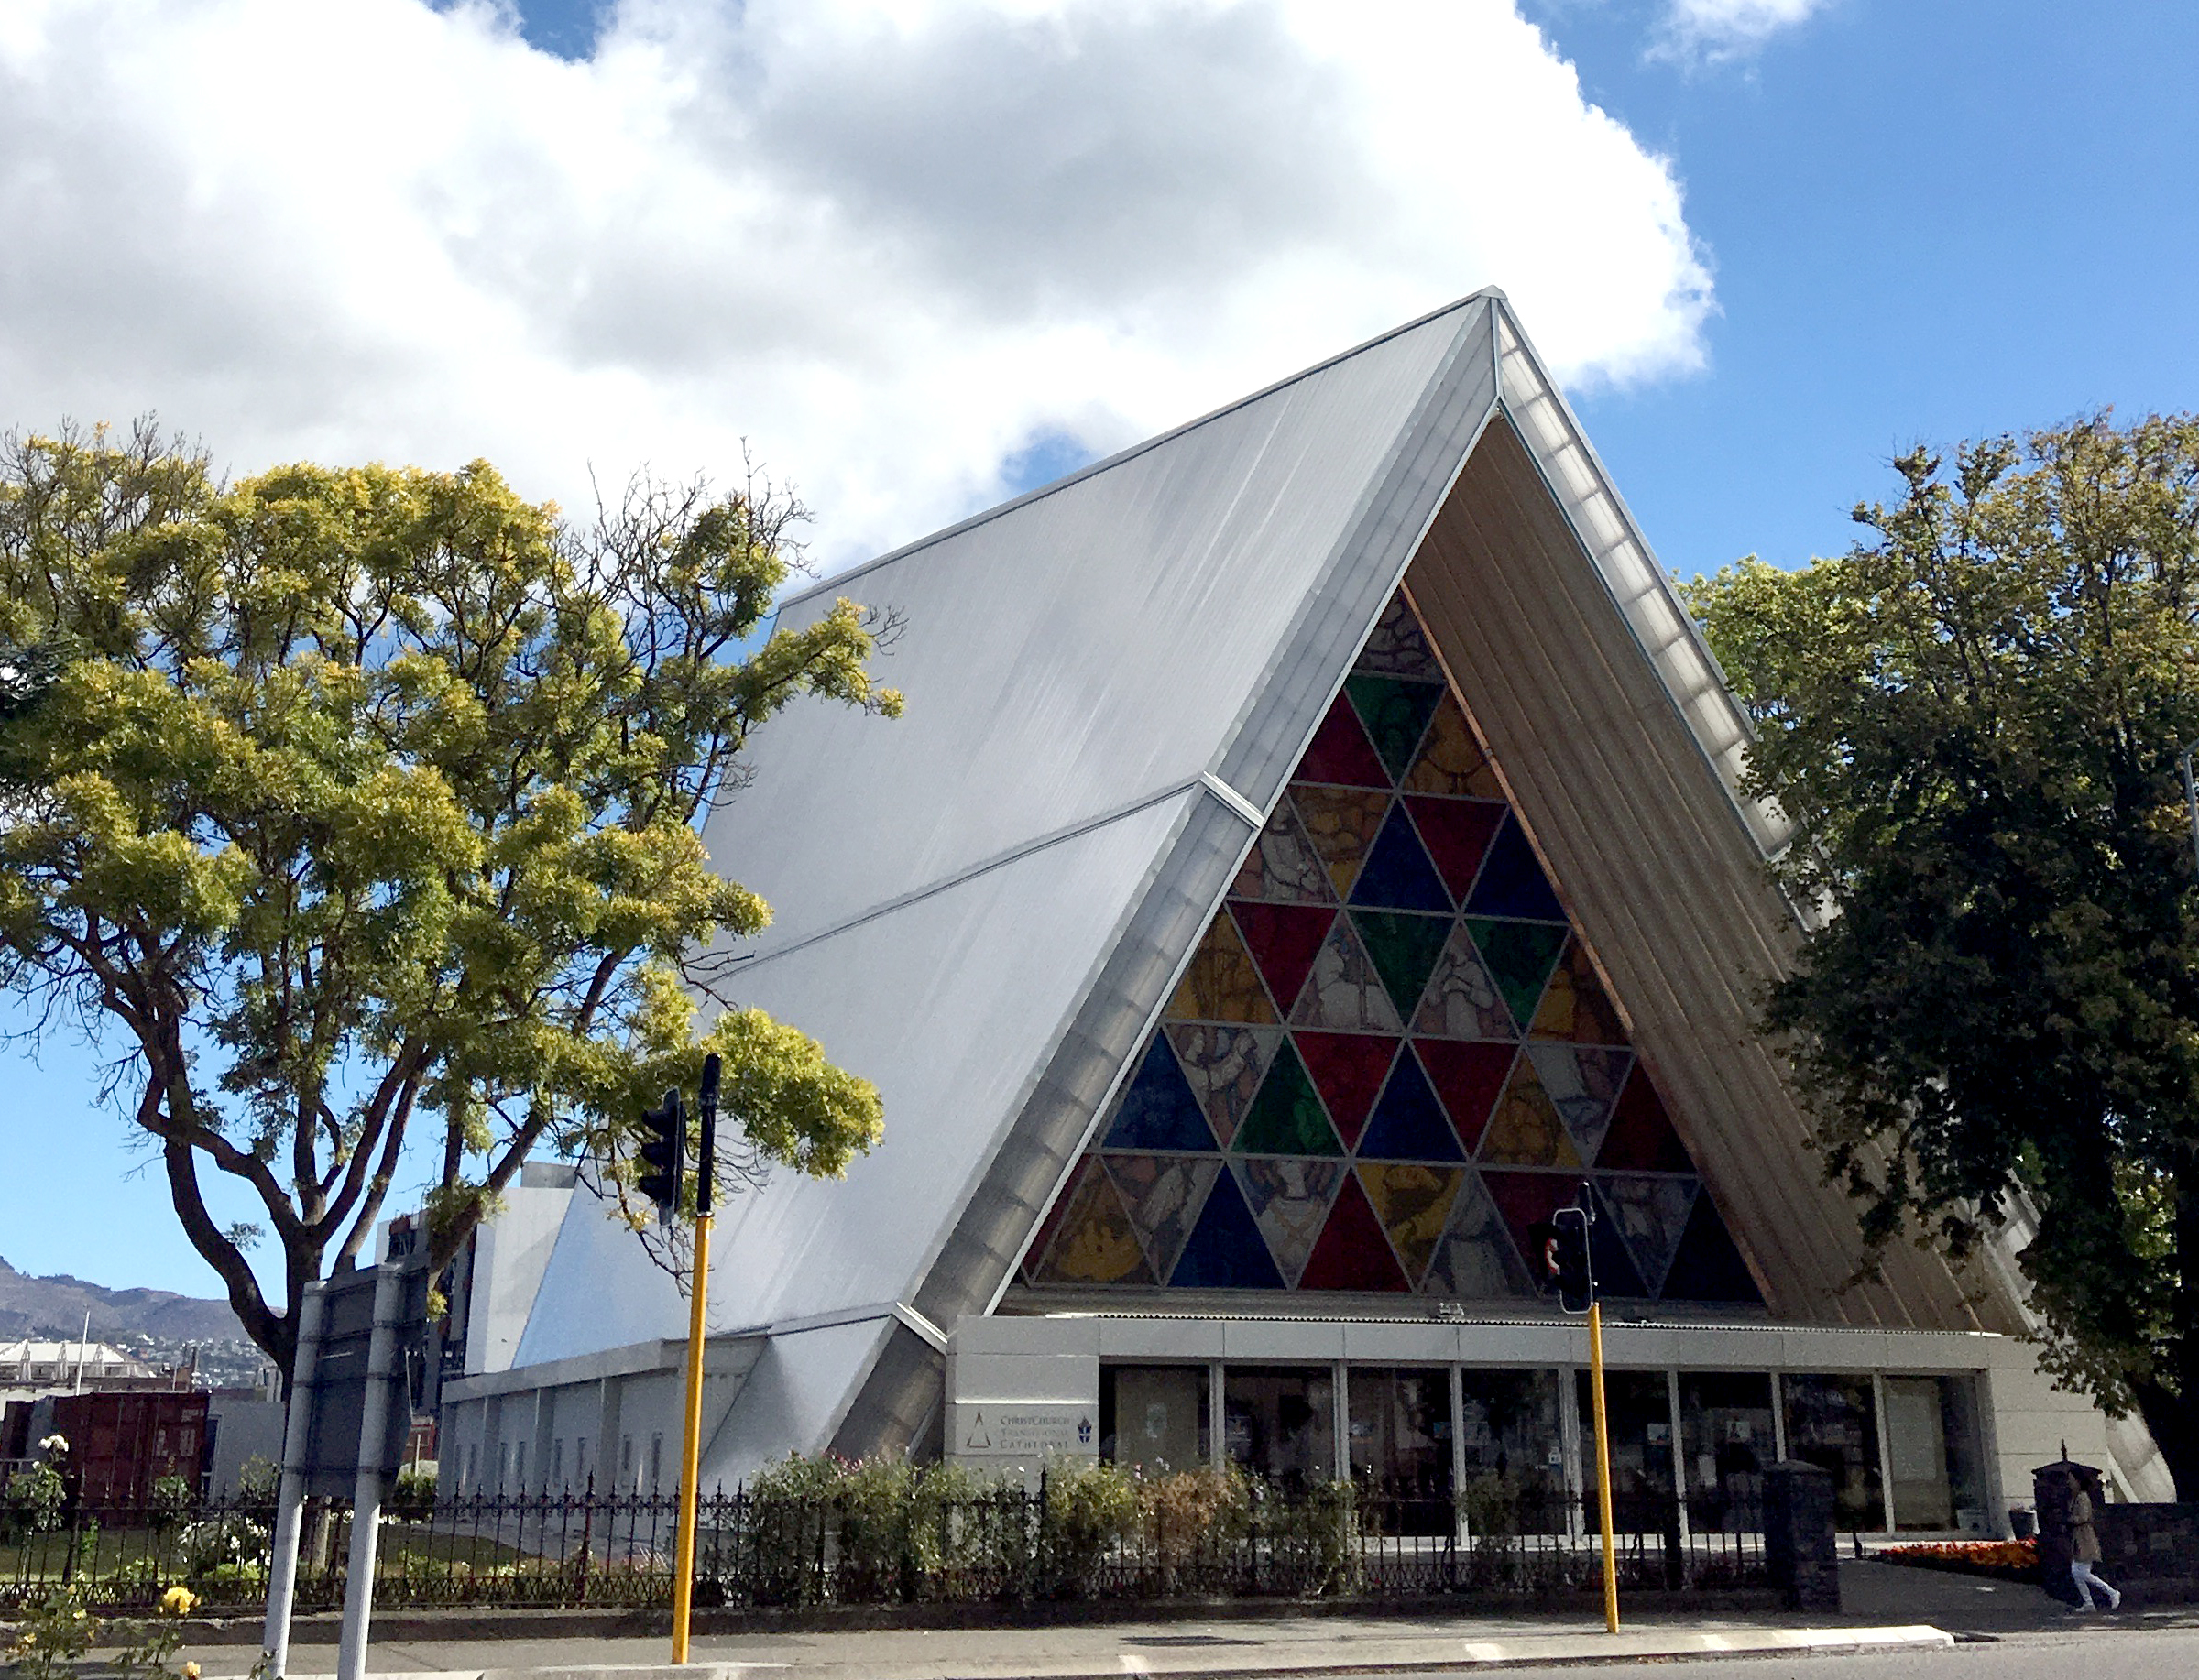 The Cardboard Cathedral (a church literally made of cardboard) opened in 2013 designed by architect, Shigeru Ban.